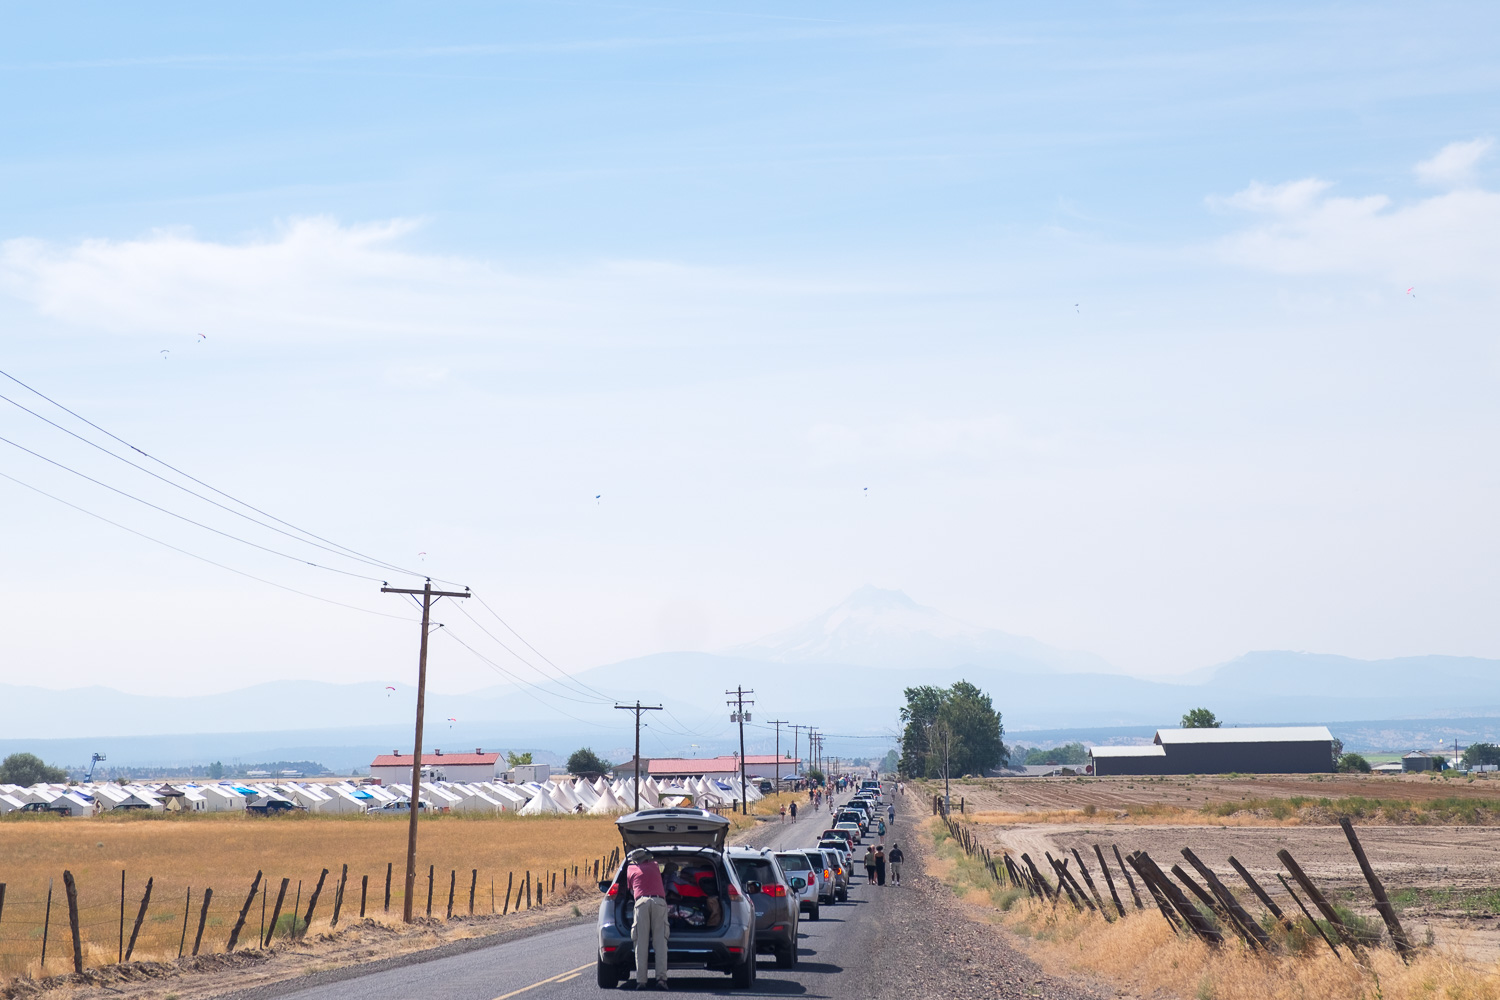 75,000 campers head to Madras. Oregon Solarfest (Image: Paola Thomas / Seattle Refined)